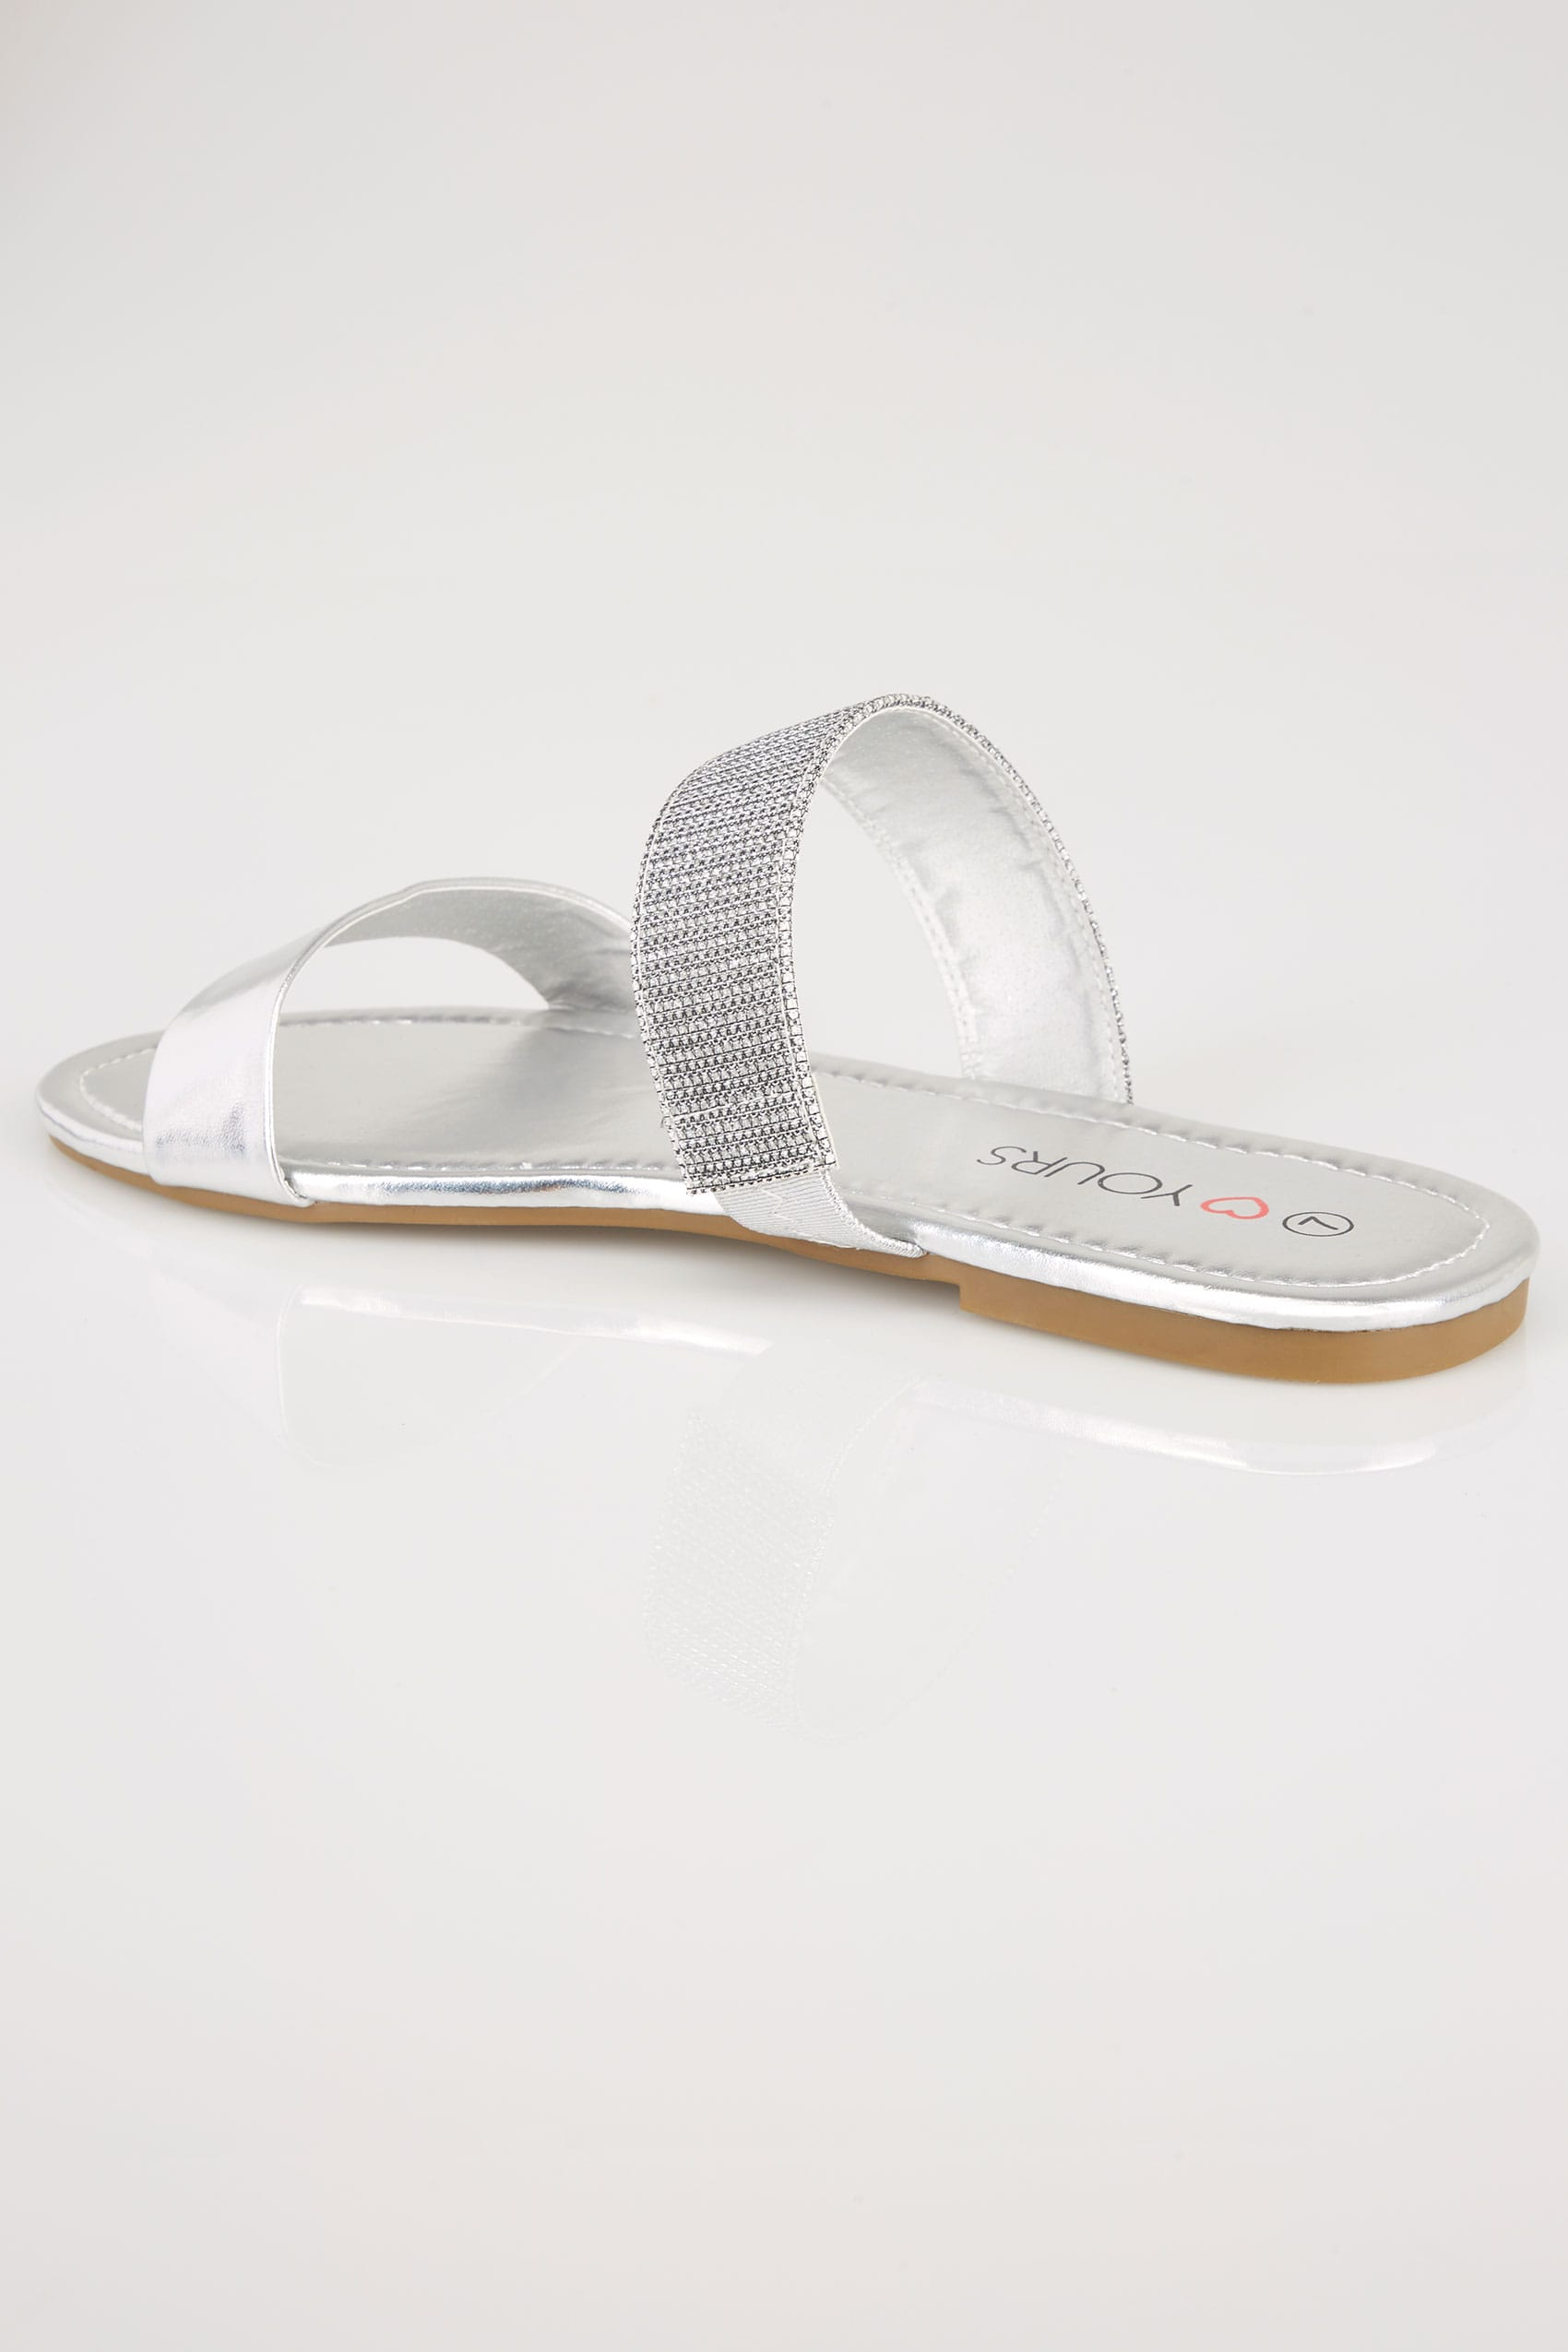 Silver Double Strap Slider Sandals In Eee Fit-1757